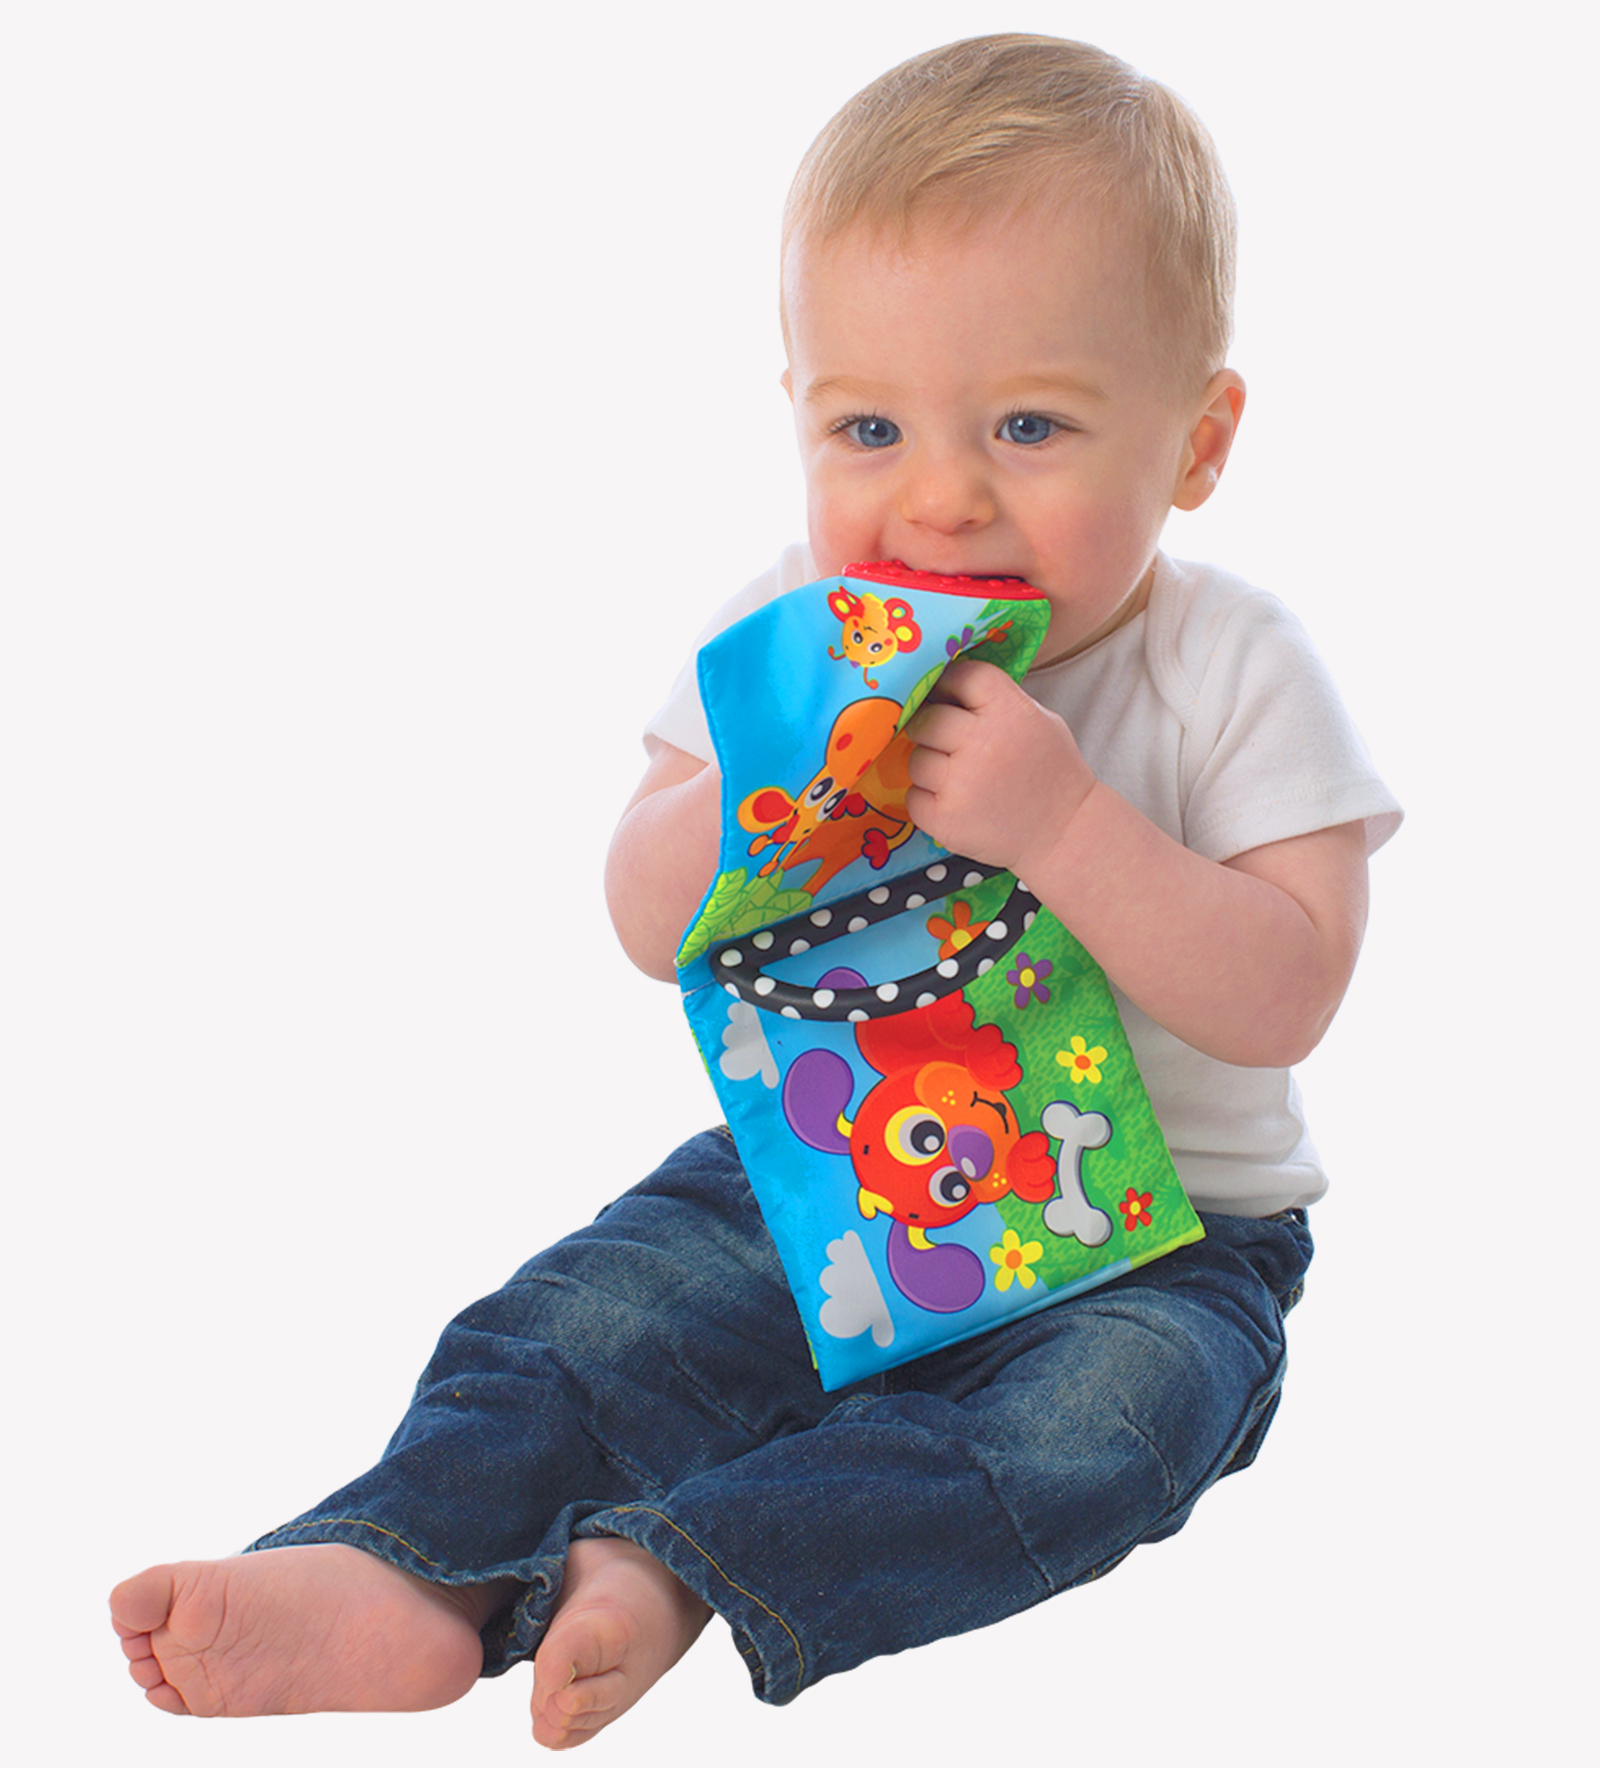 Picnic Pals Teether Book